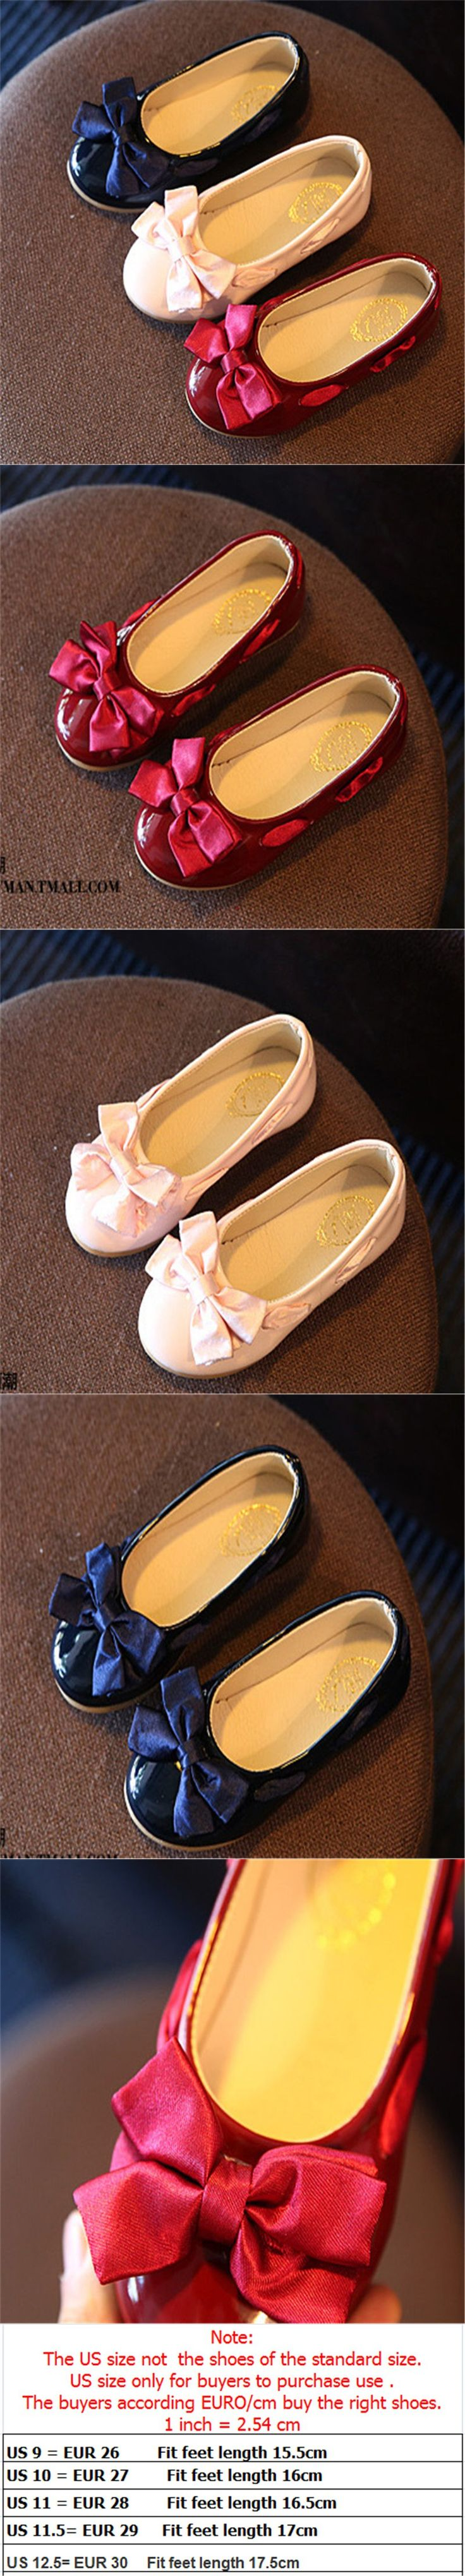 Kids Shoes For Girls Hotsale Children Casual Shoes Slip-on Princess Girls Shoes chaussure fille Fashion Sneakers With Bow 26-30 $16.59